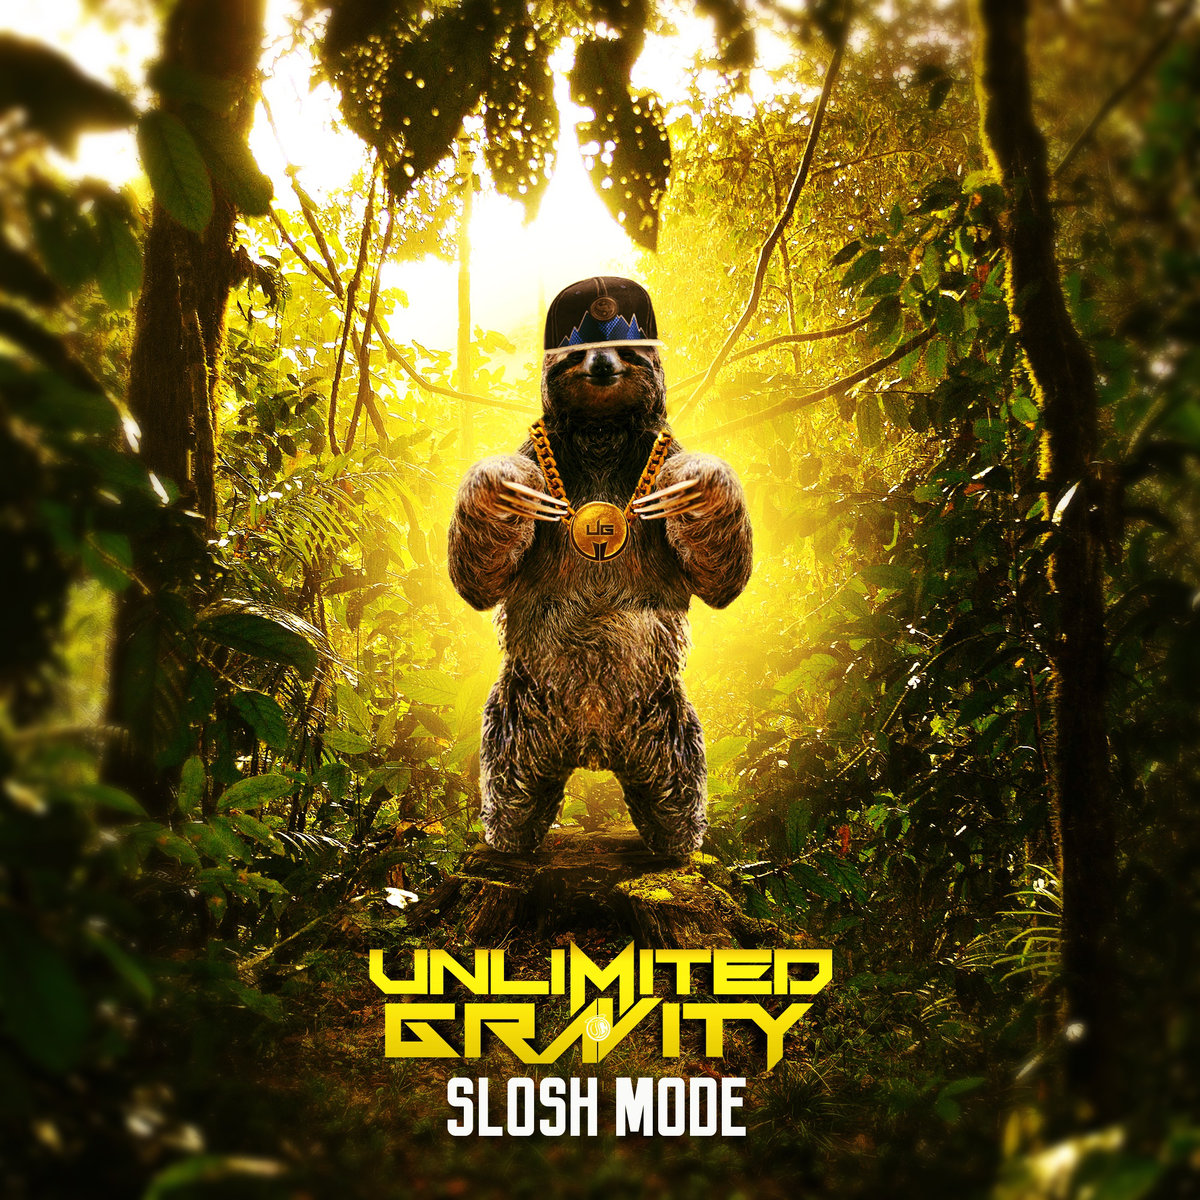 Unlimited Gravity - Get It (Lil Mama) @ 'Slosh Mode' album (Austin)